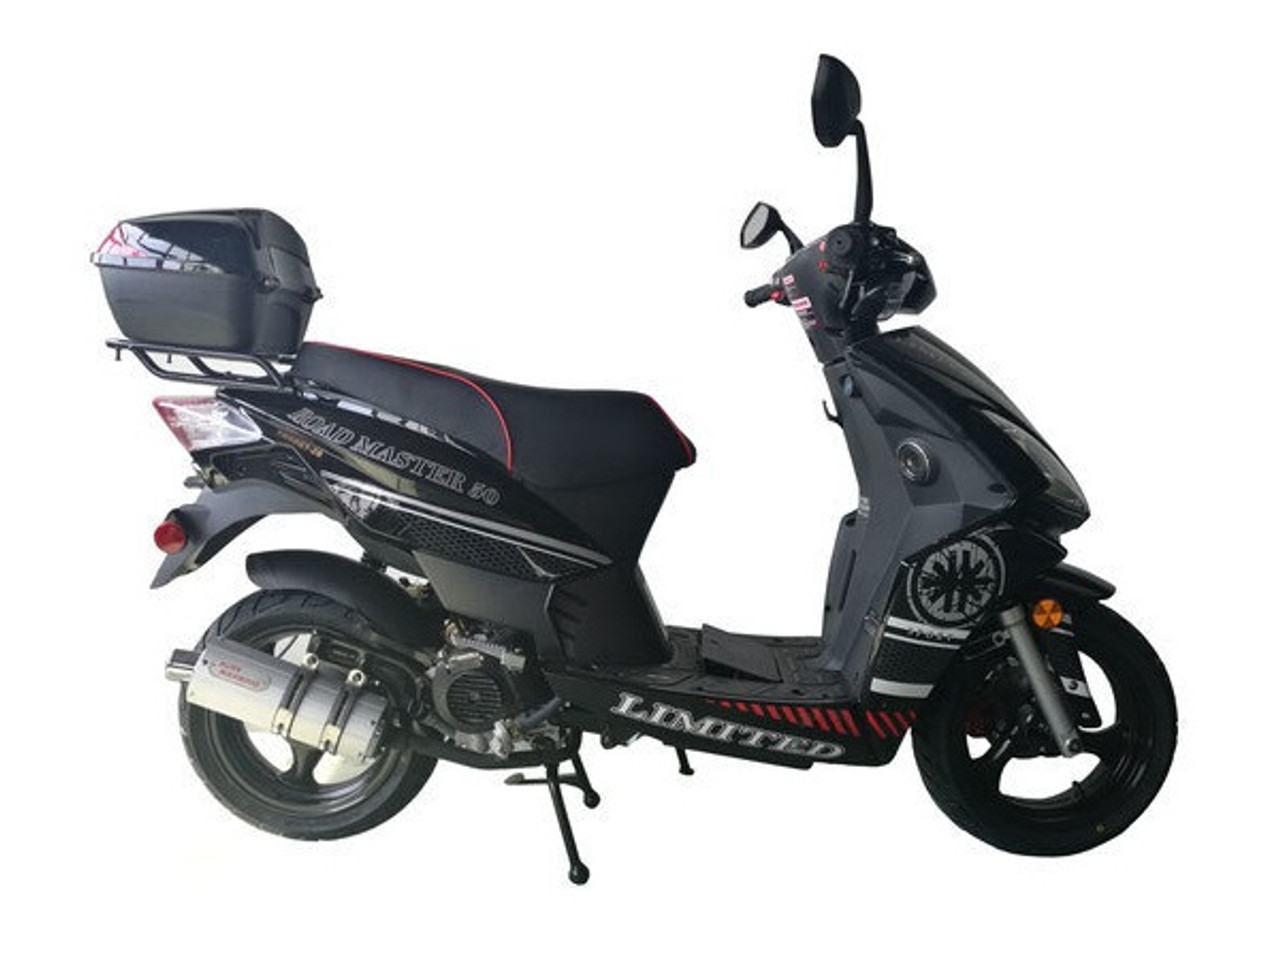 Cougar Cycle ROAD MASTER 150cc Scooter, 4 Stroke,Single Cylinder,Air-Forced Cool